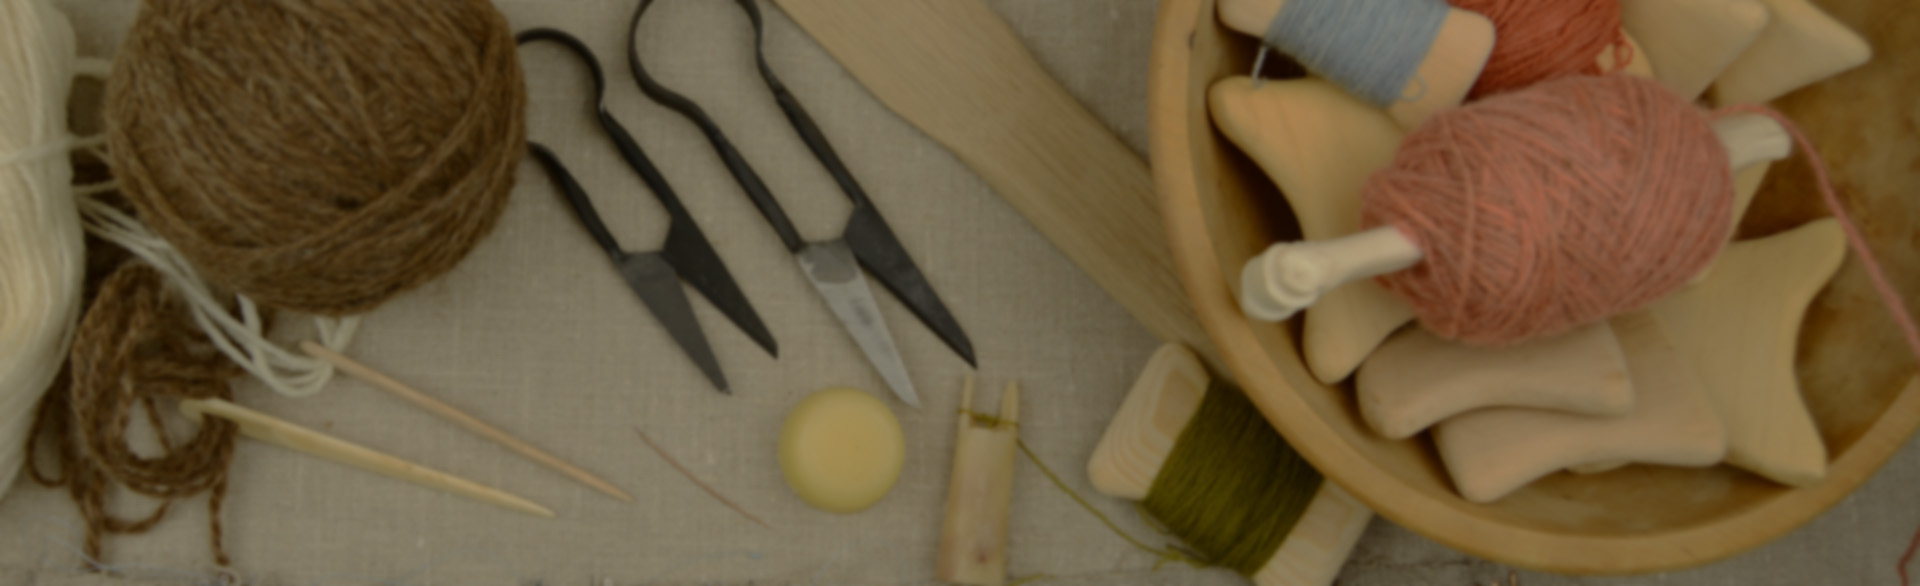 Haberdashery and Textile Tools